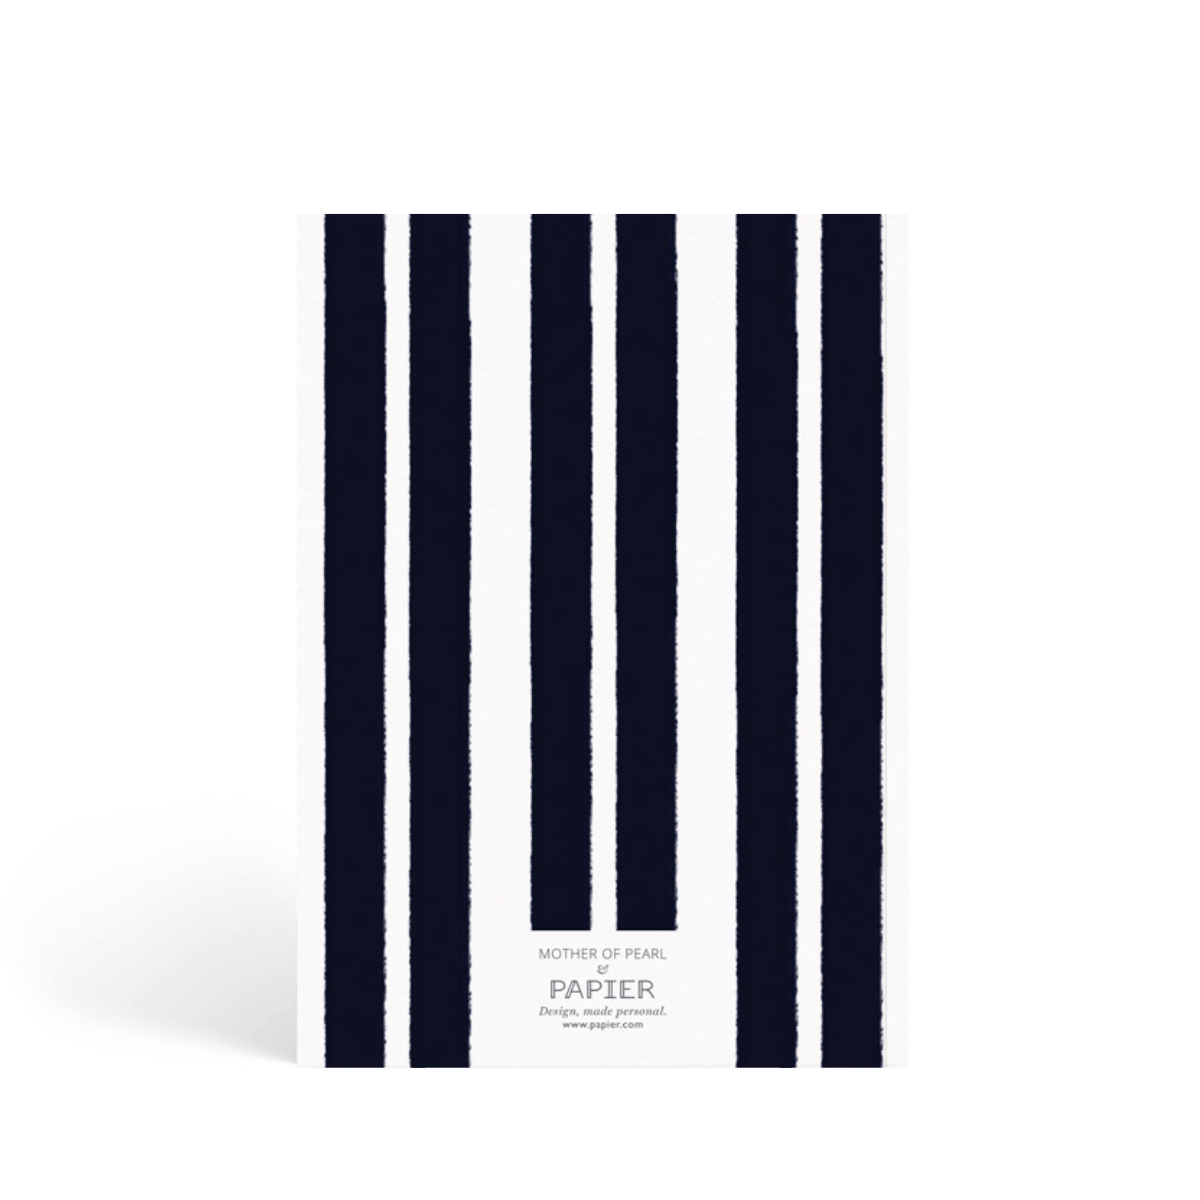 Https%3a%2f%2fwww.papier.com%2fproduct image%2f24320%2f5%2fnavy paint stripe 6087 back 1498138414.png?ixlib=rb 1.1